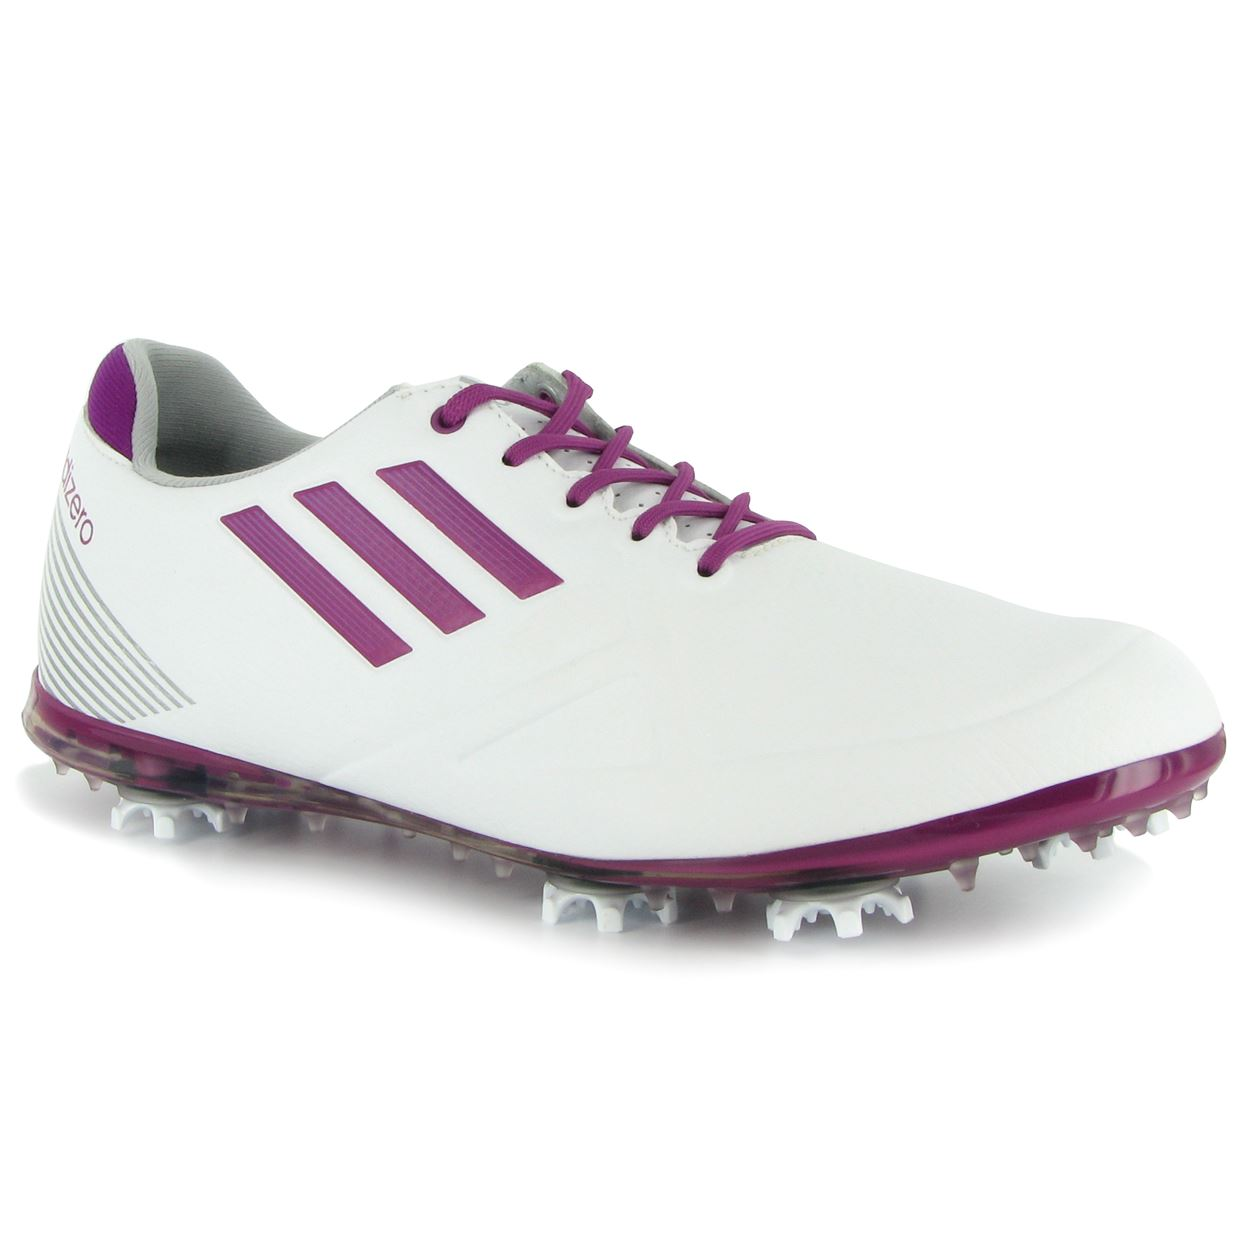 Adizero Shoes Golf